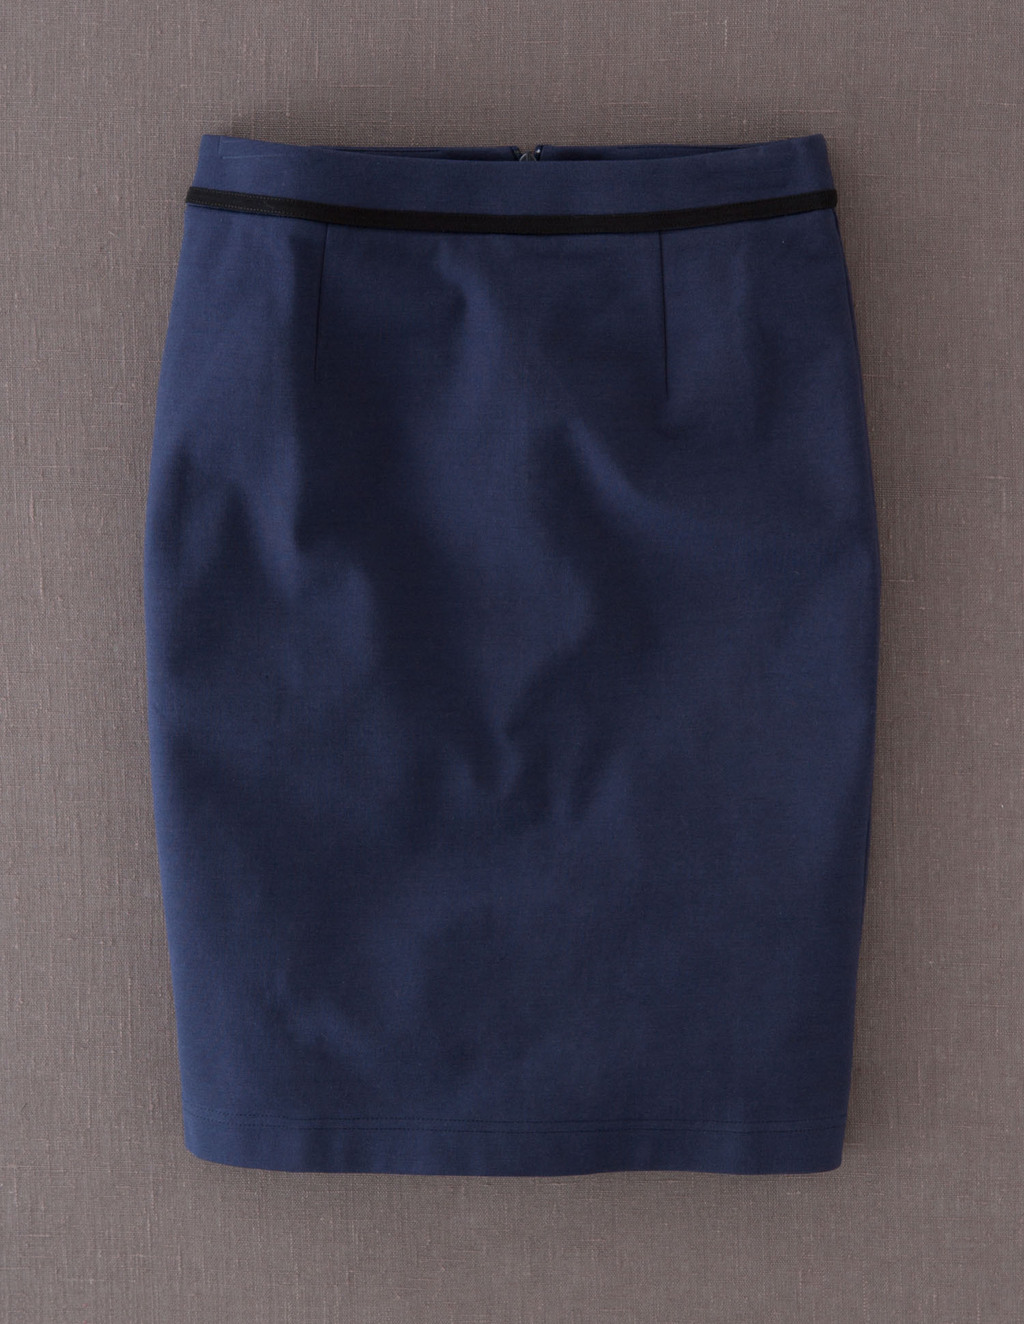 Breadwinner Skirt - pattern: plain; style: pencil; fit: tailored/fitted; waist: mid/regular rise; predominant colour: navy; secondary colour: black; occasions: casual, work; length: just above the knee; fibres: cotton - stretch; texture group: cotton feel fabrics; pattern type: fabric; season: a/w 2013